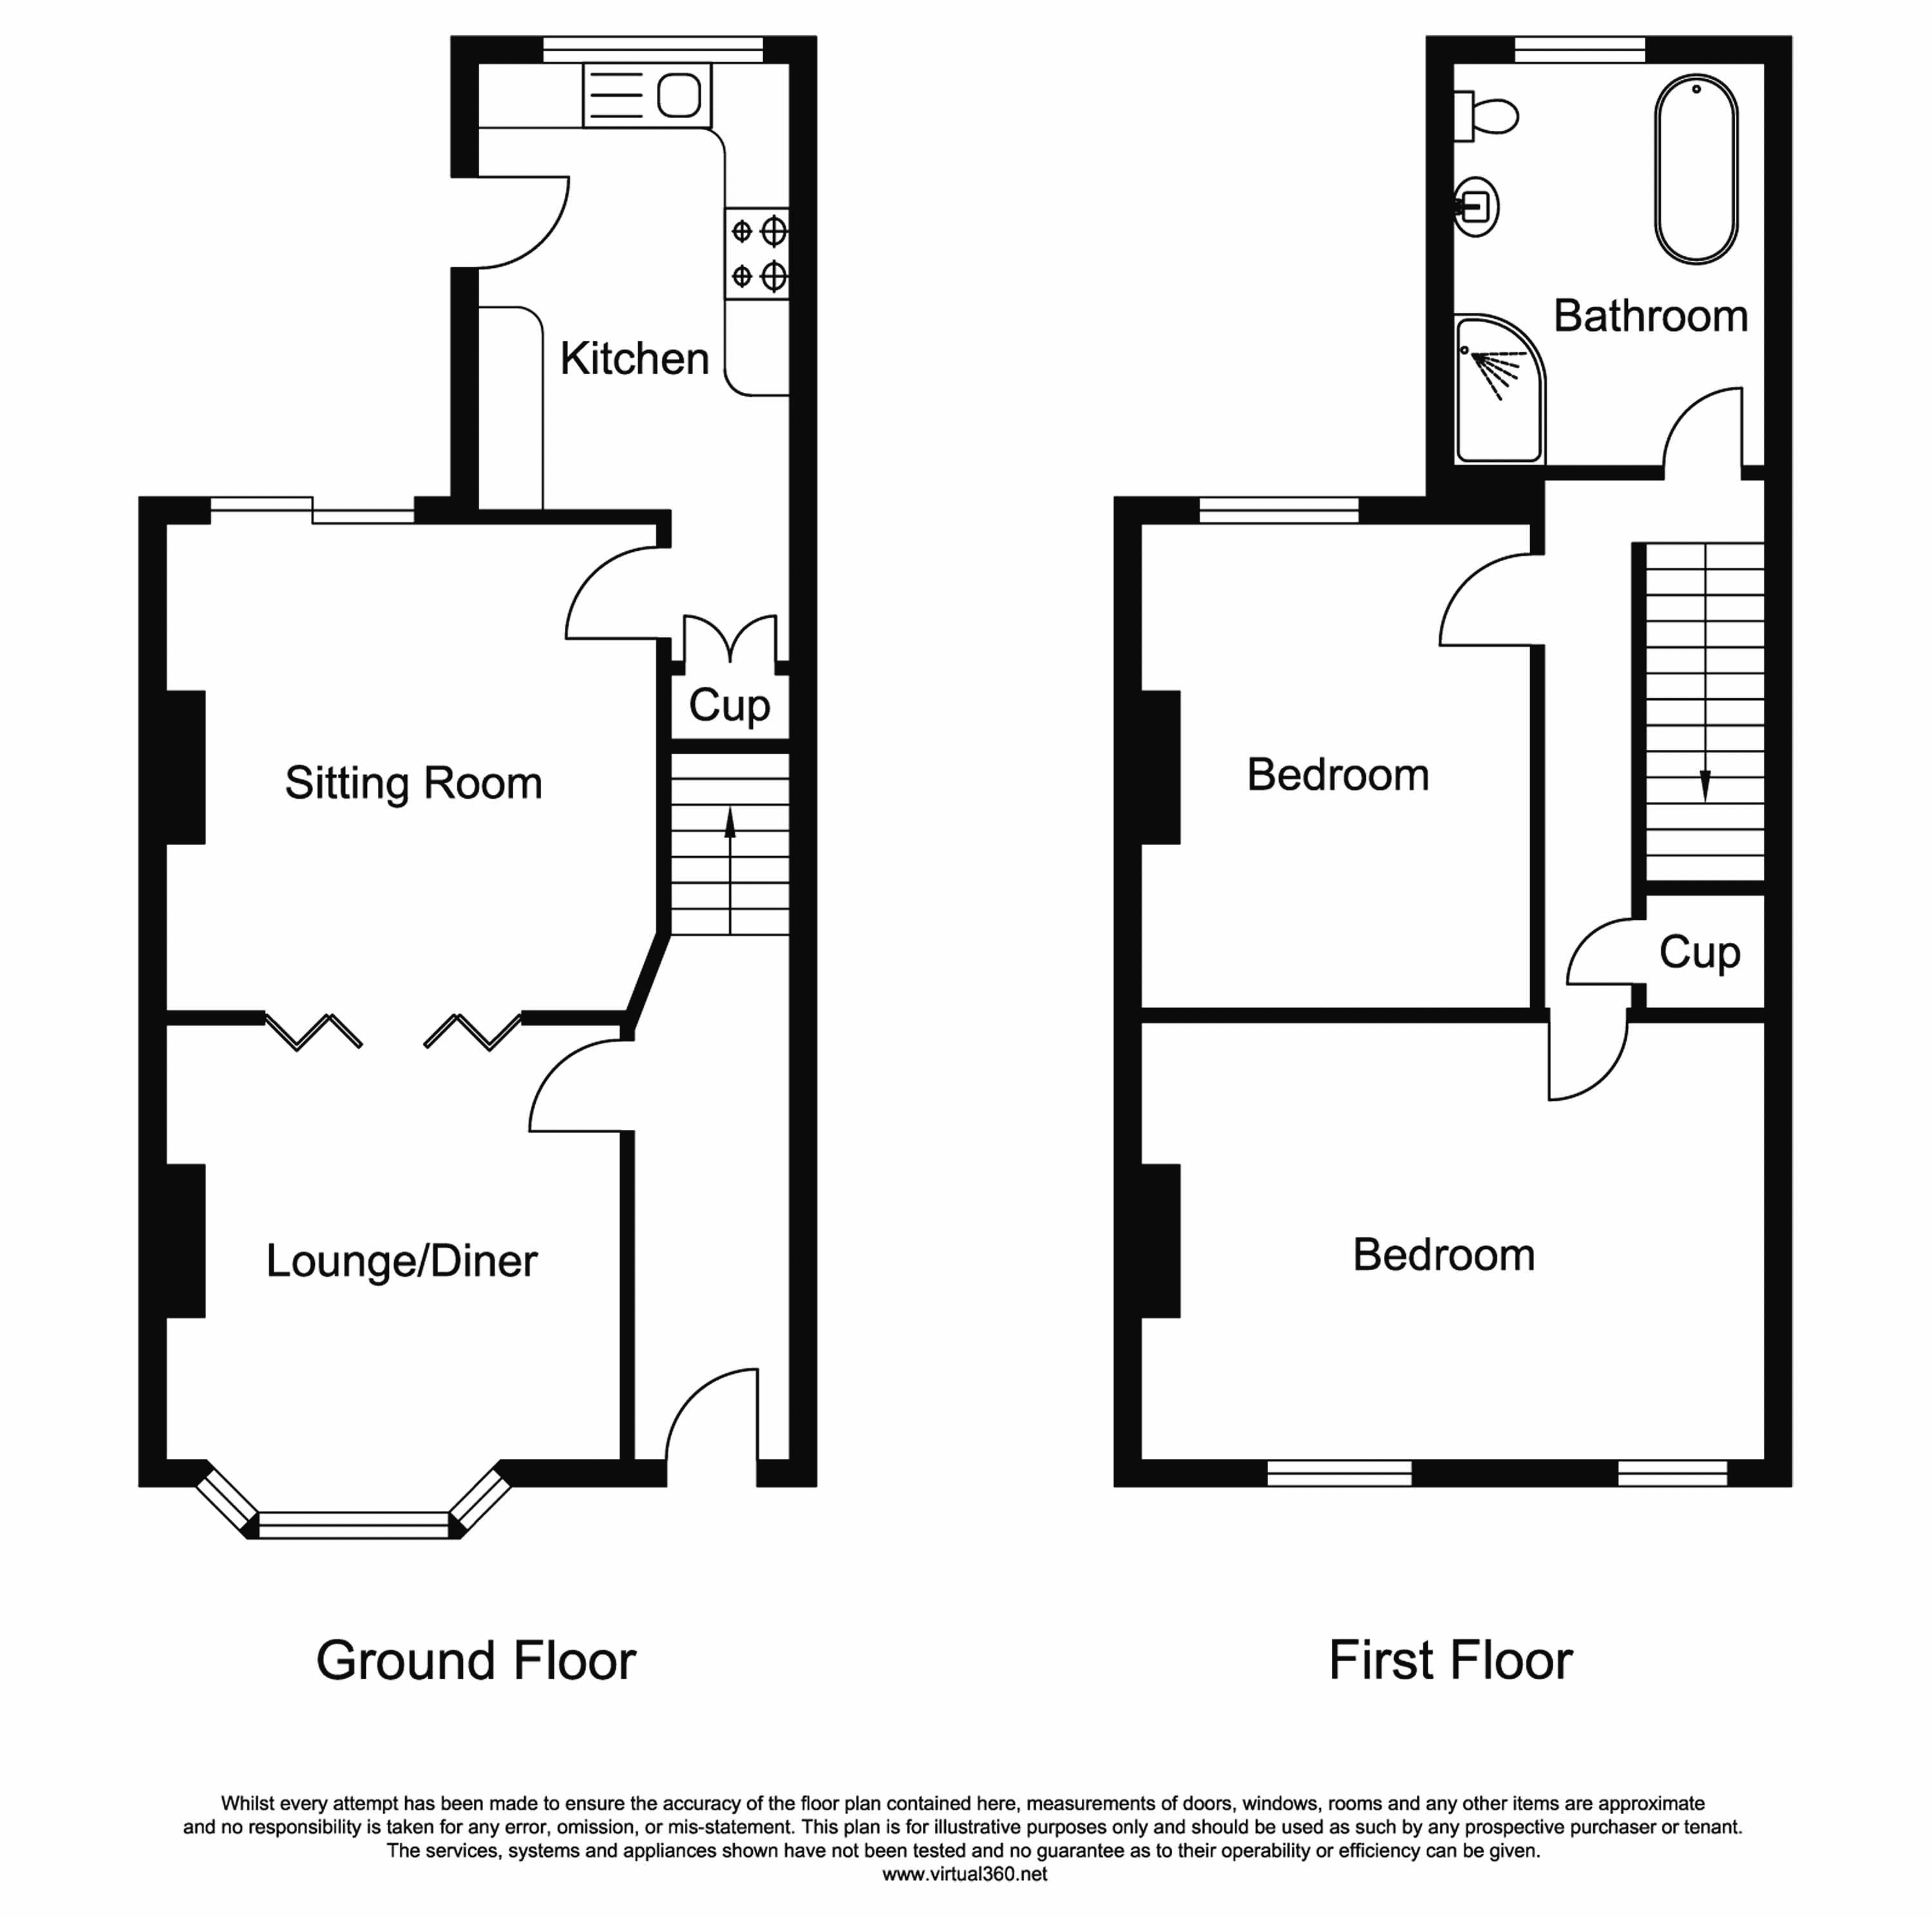 West Road, Congleton floor plan